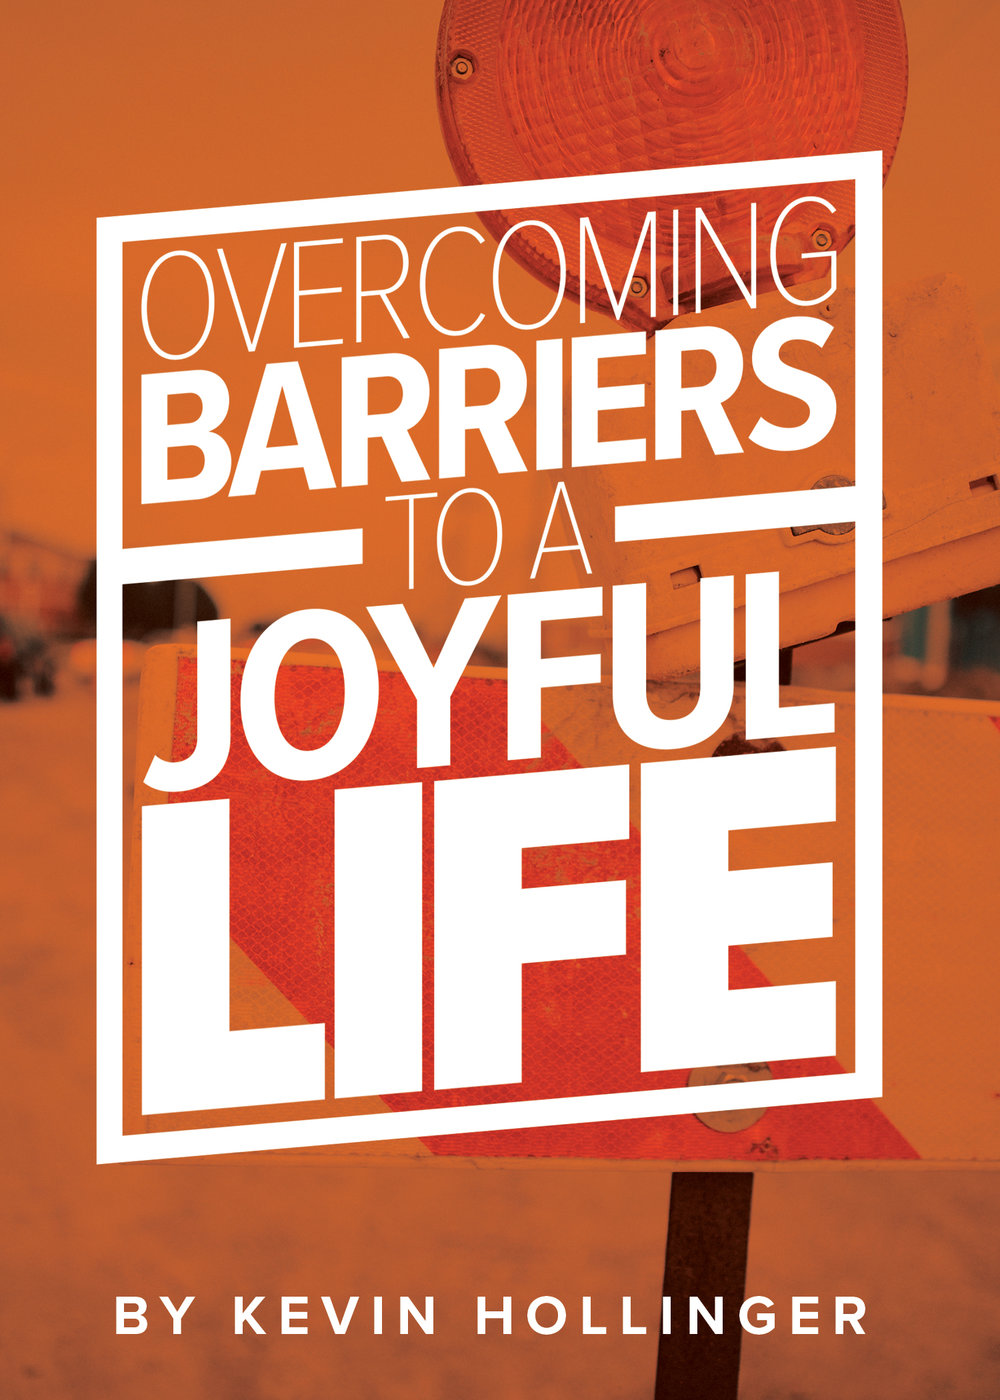 Overcoming Barriers Front Only Cover2.jpg